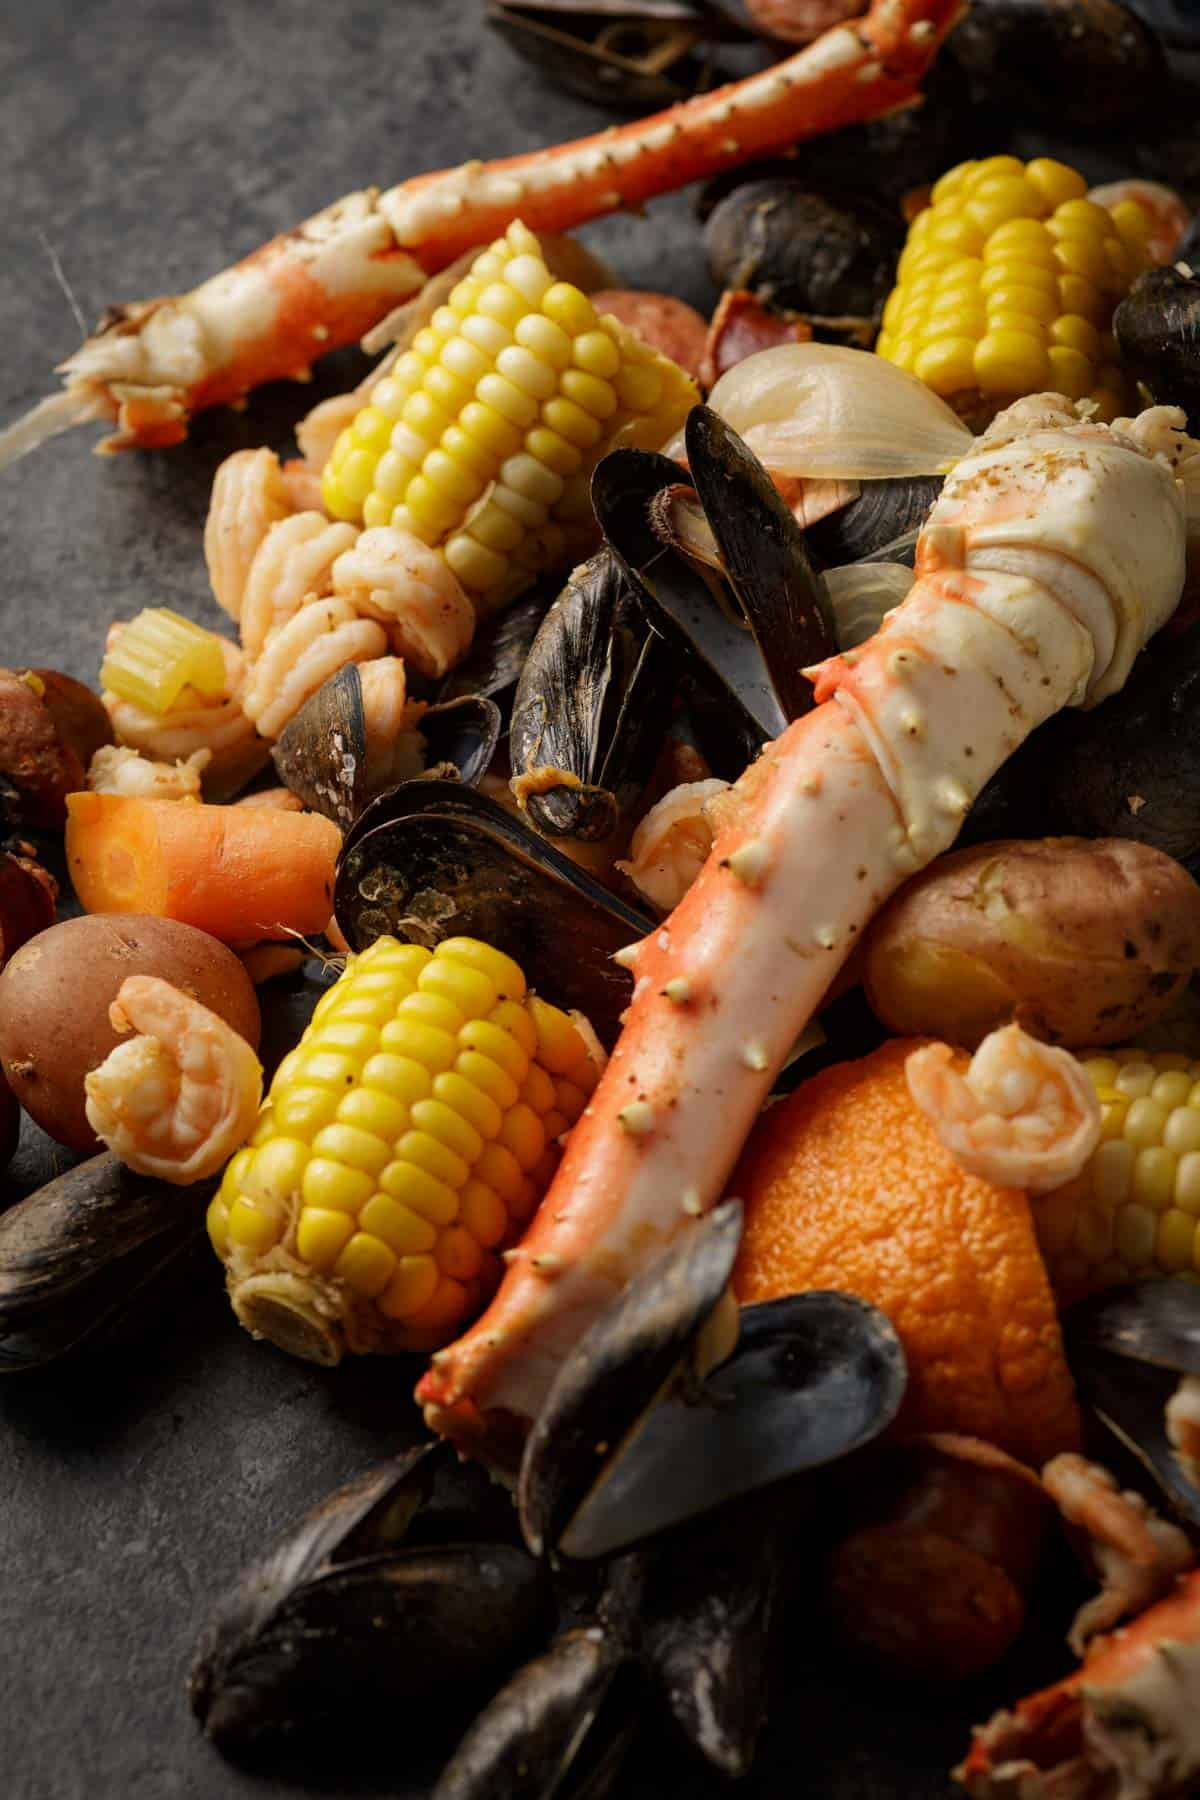 A seafood boil poured out onto a black board